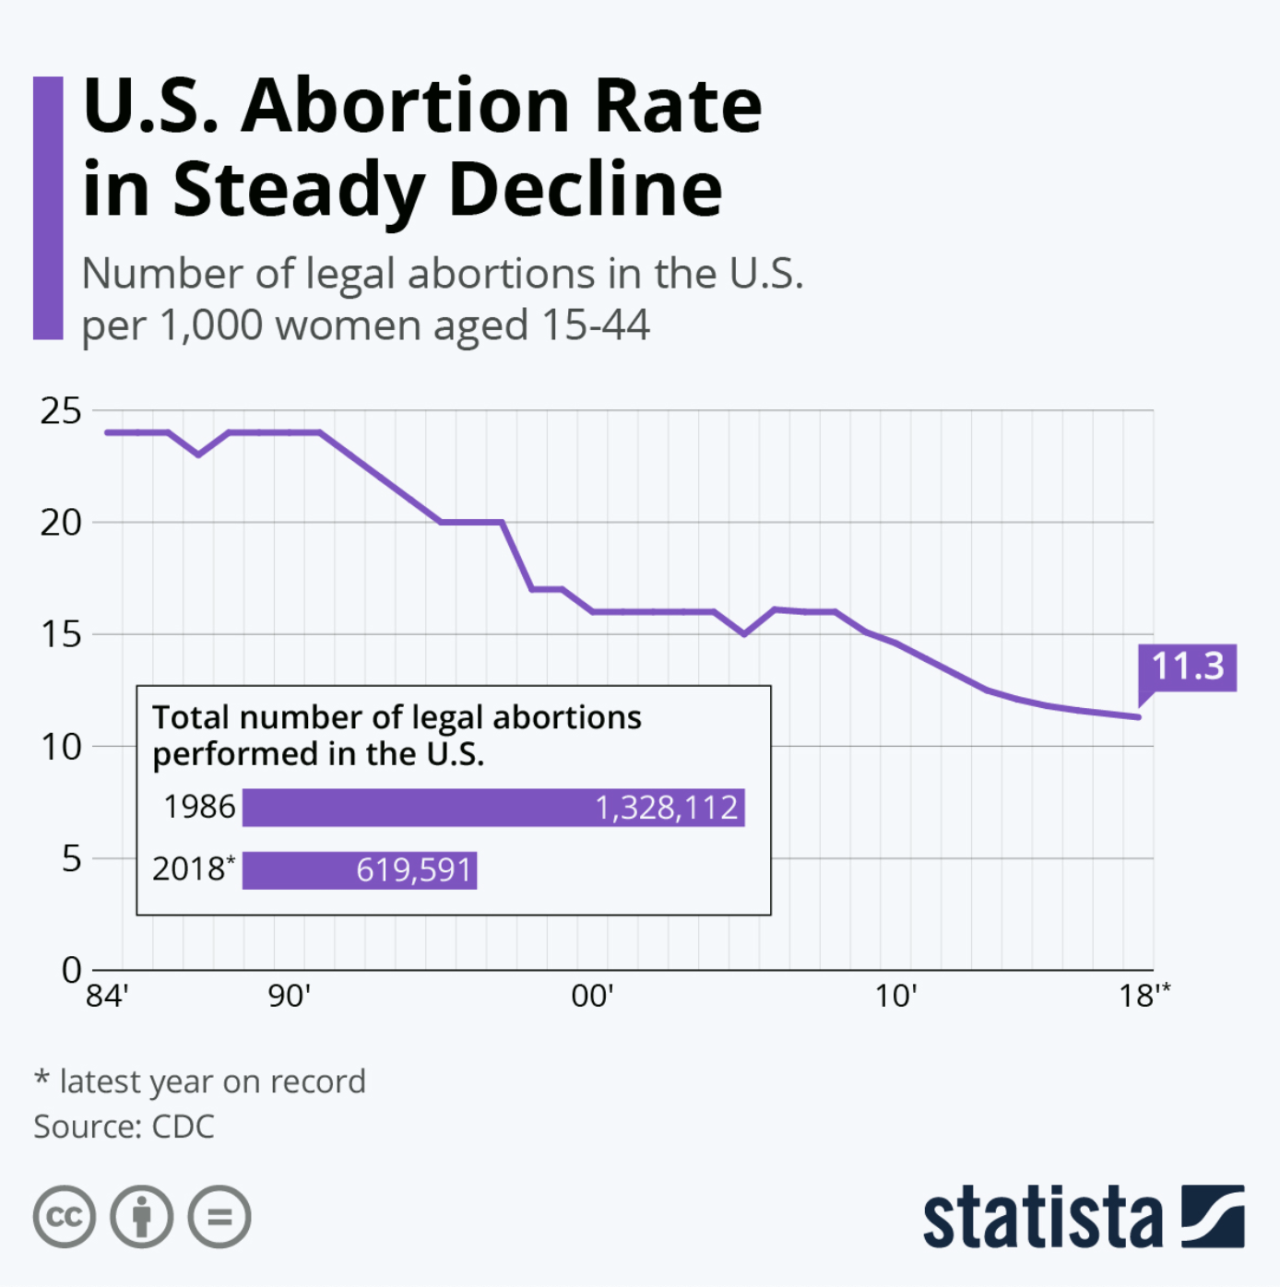 Statista This chart shows abortion rates in the U.S. since 1984.